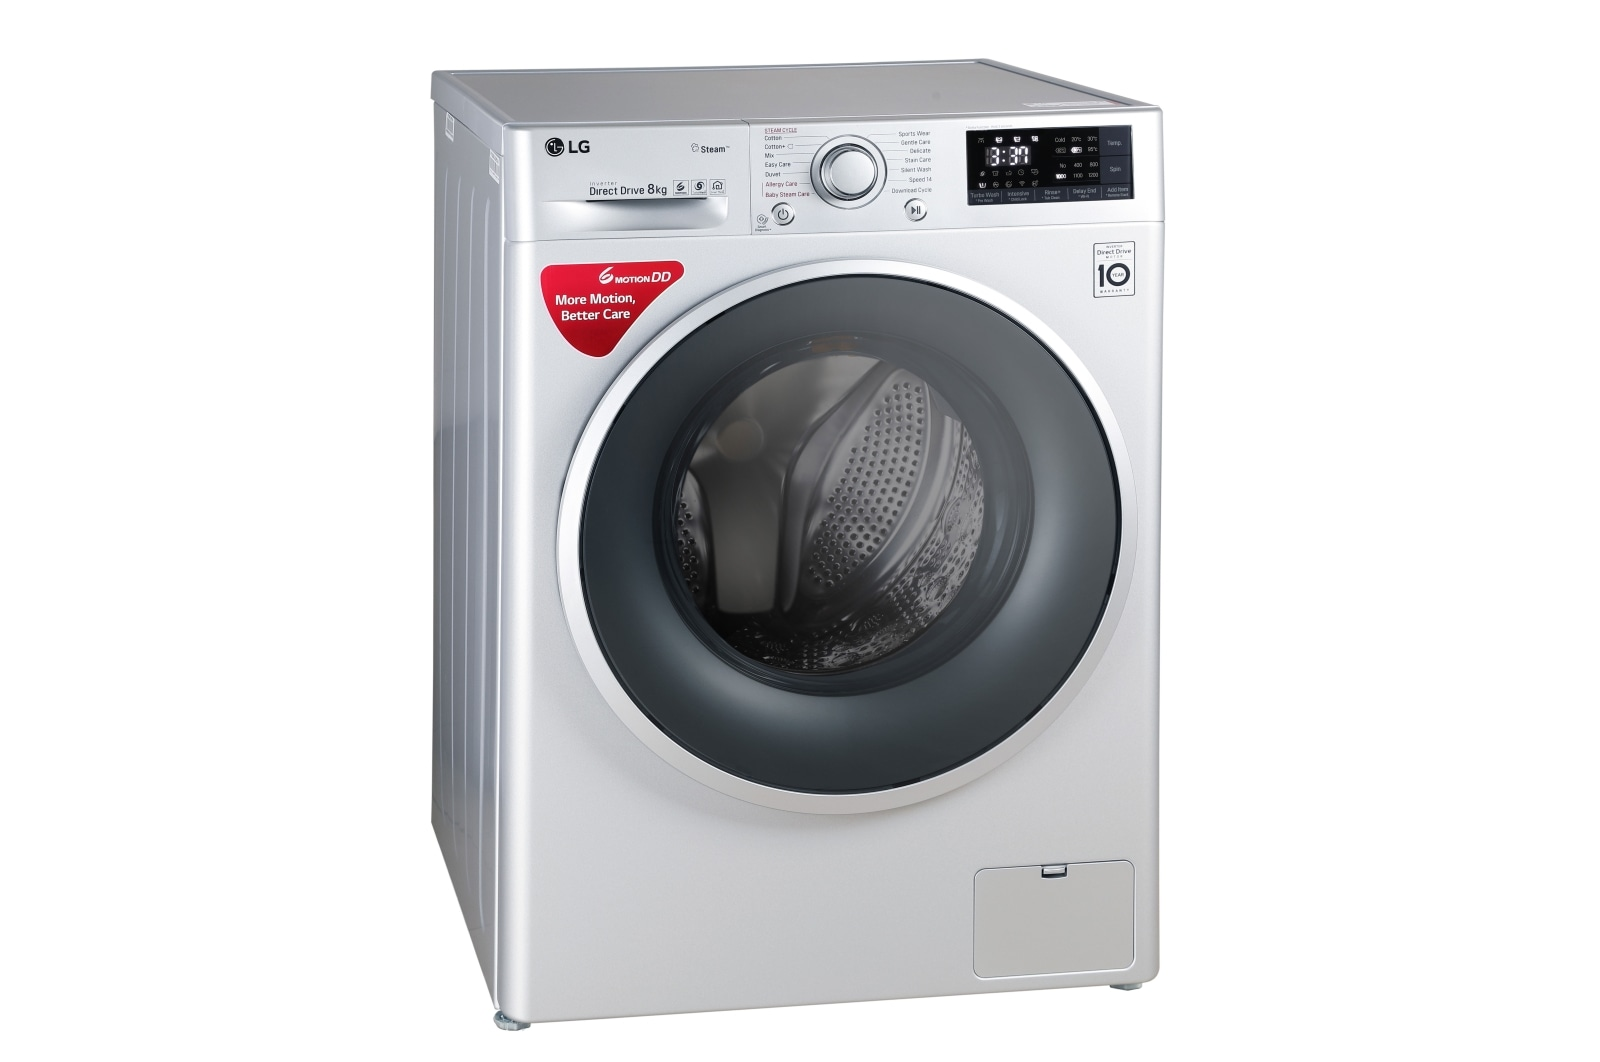 Lg 80 Kg Washing Machine With Steam Turbowash Technology India North Star Cleaner Wiring Diagram